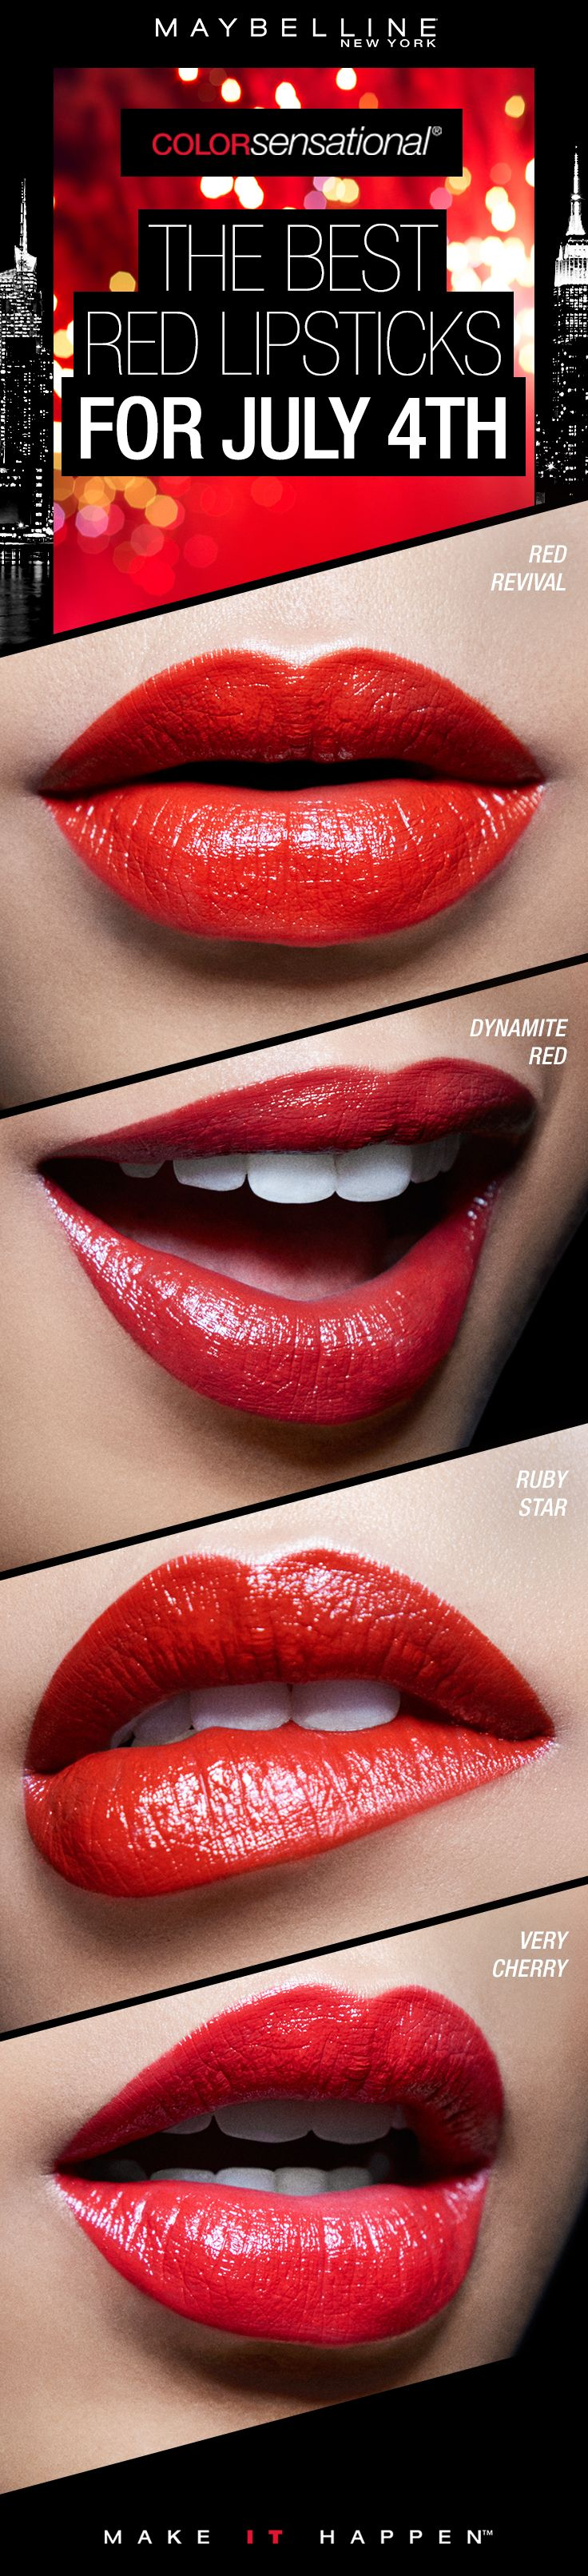 225 best lippies images on pinterest | makeup, red and beautiful